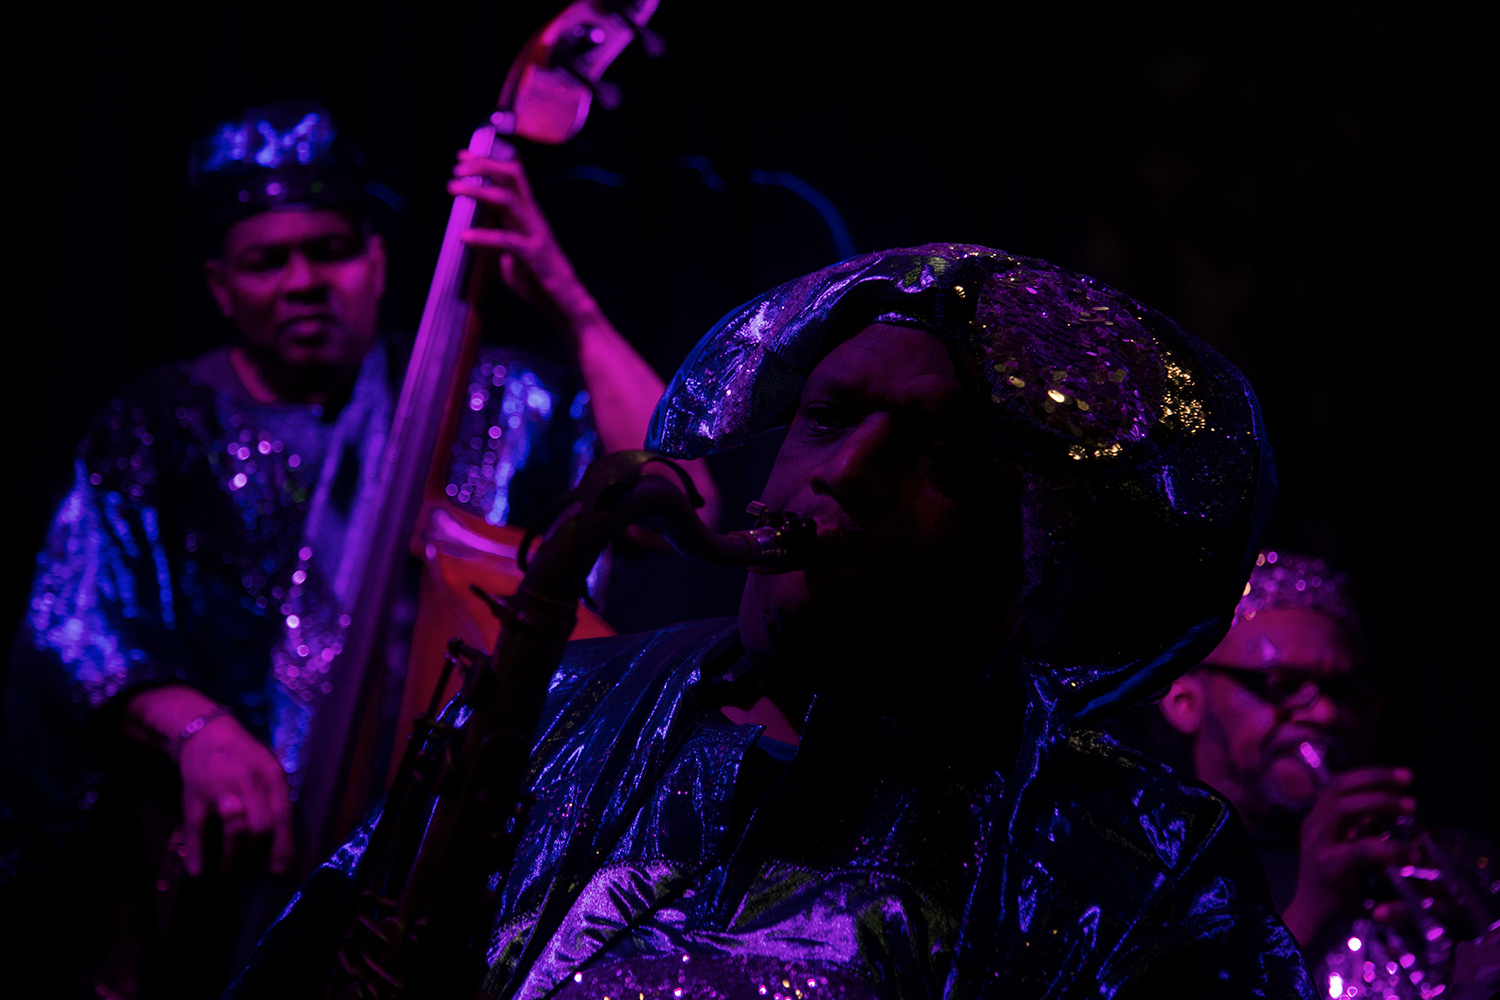 Sun Ra Arkestra directed by Marshall Allen by Laurent Orseau - Concert - Les Ateliers Claus - Brussels, Belgium #15